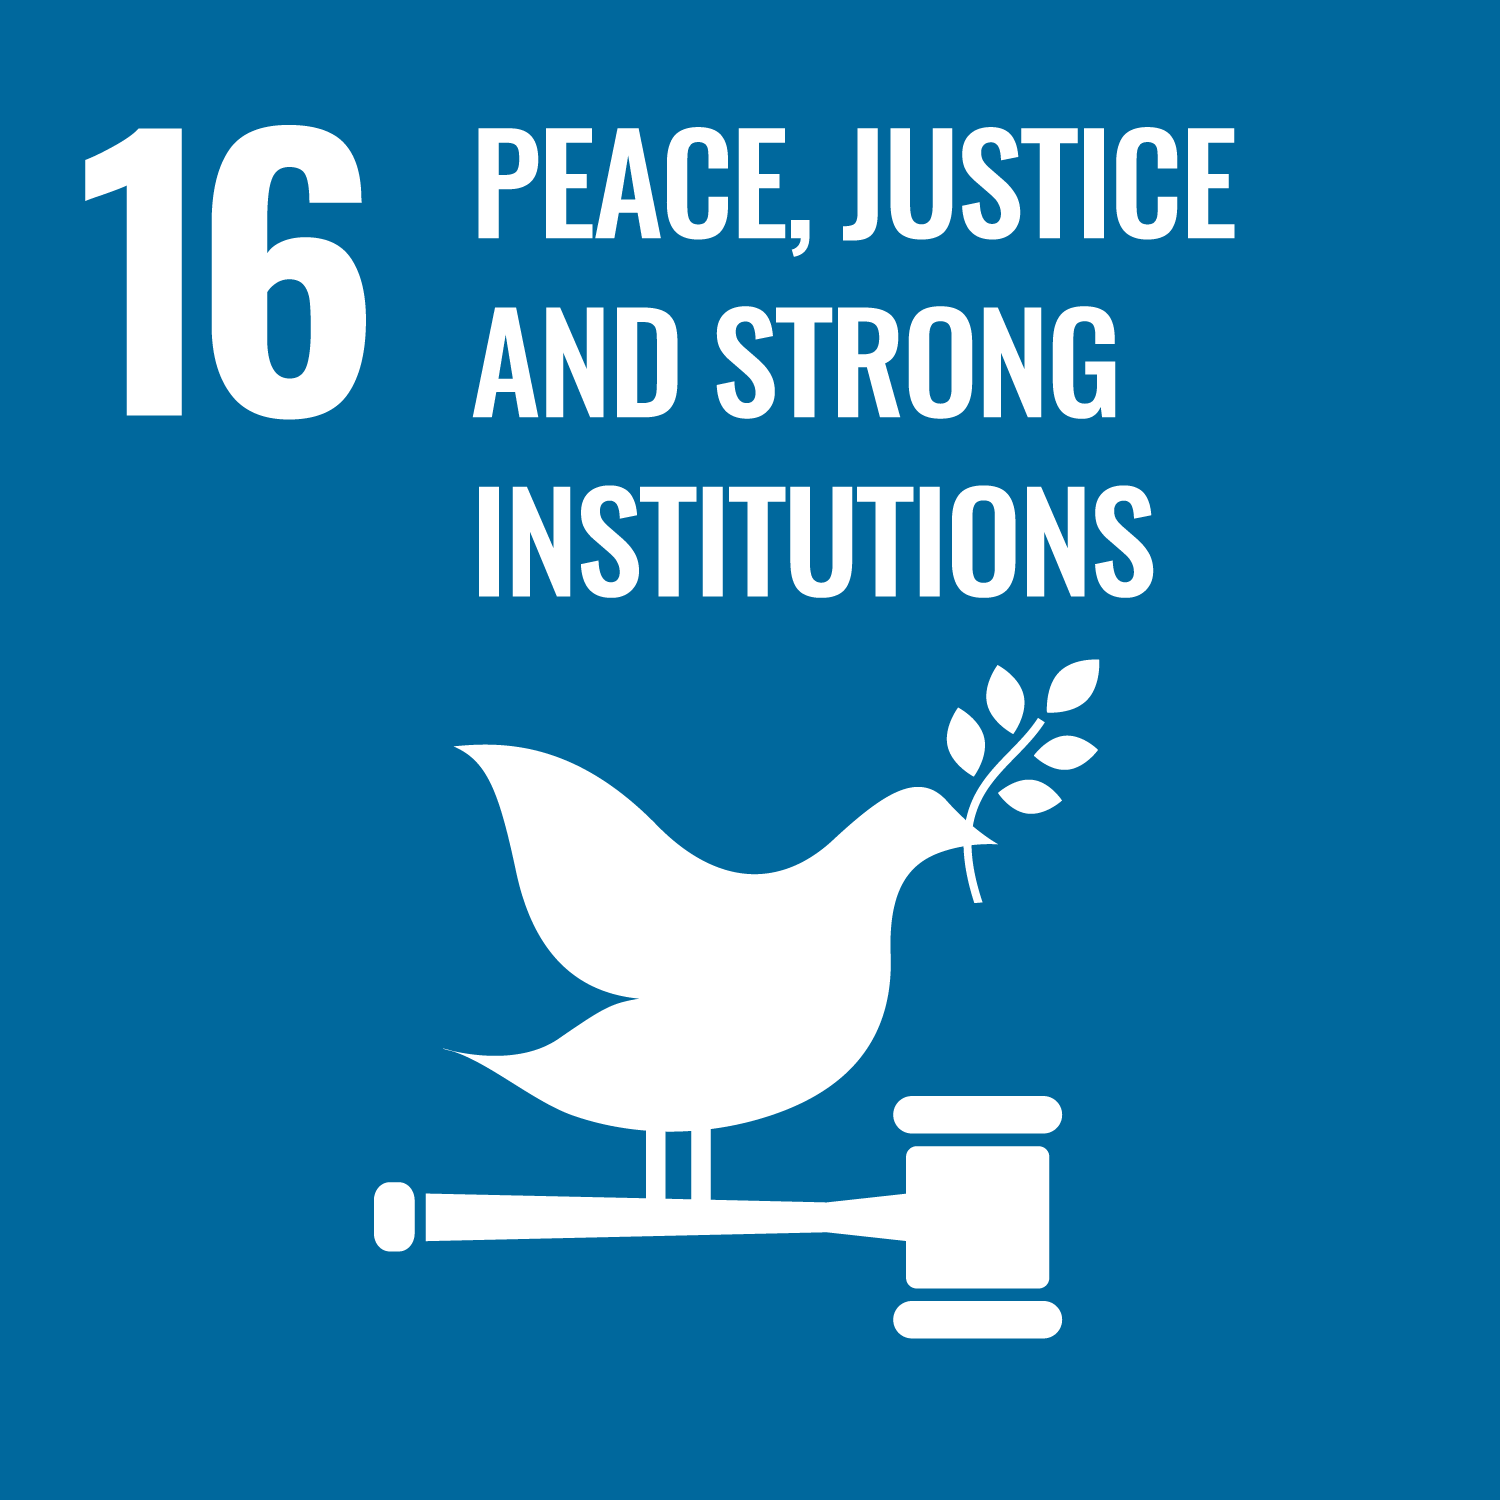 UN SDG GOAL 16 PEACE, JUSTICE AND STRONG INSTITUTIONS